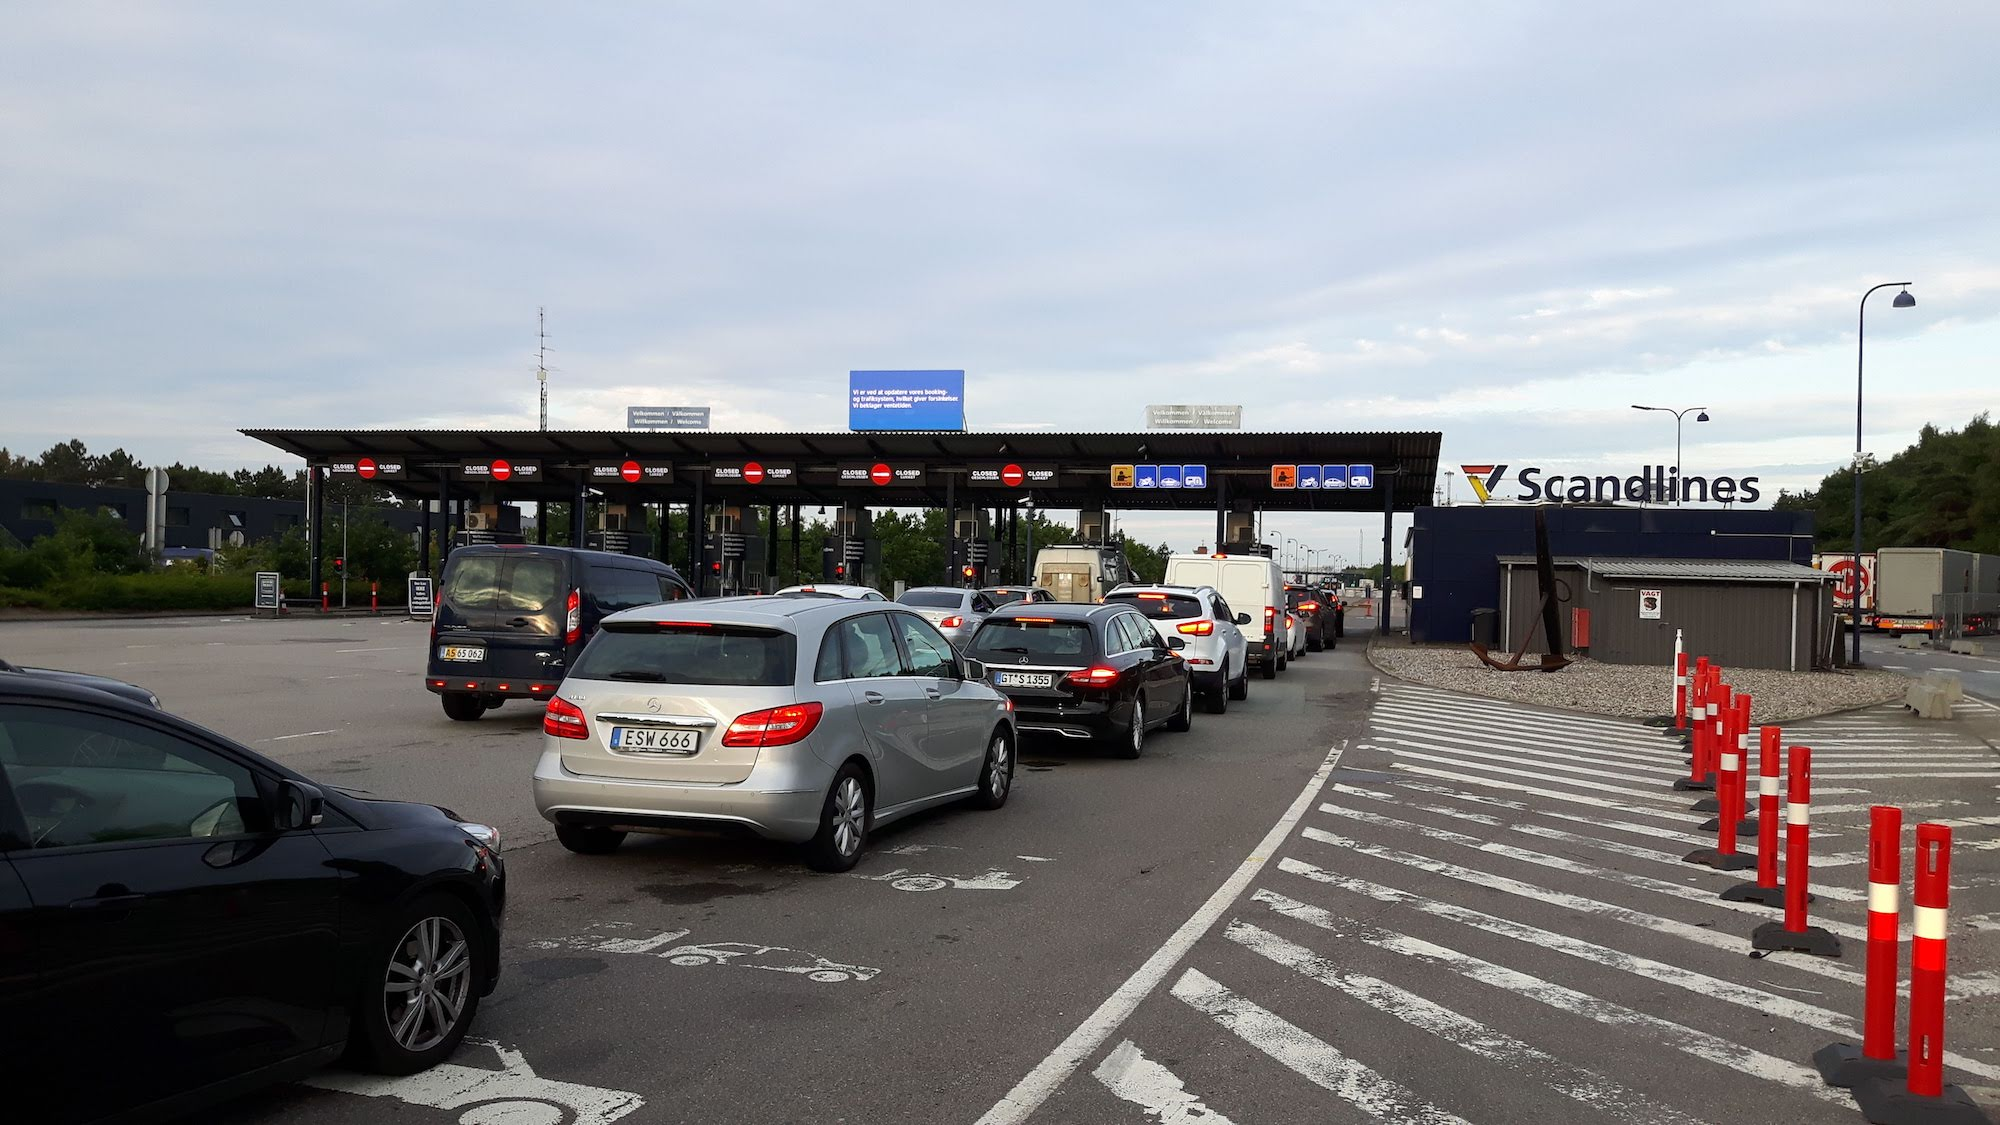 Waiting in line for Ferry to Germany